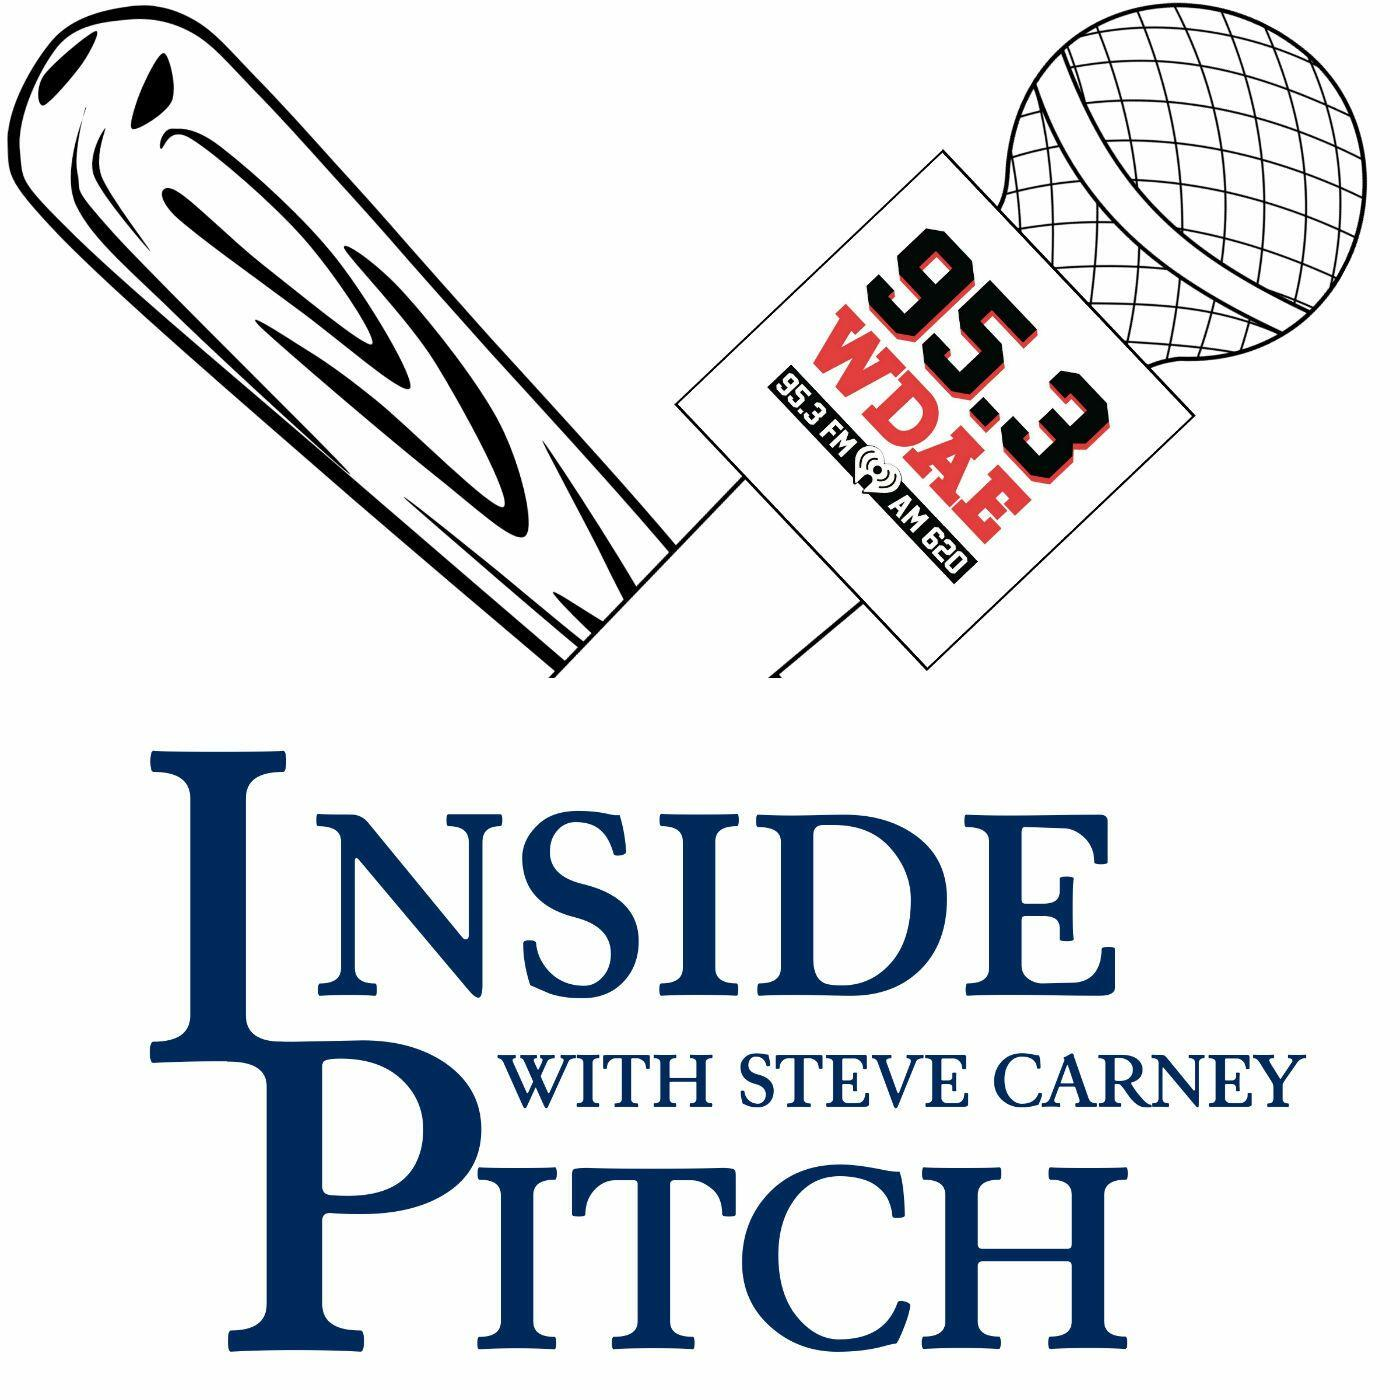 Listen to Rays Drop Middle Game To Jays And Could We See A LoMo-lympian   Inside Pitch Podcast   Podcasts